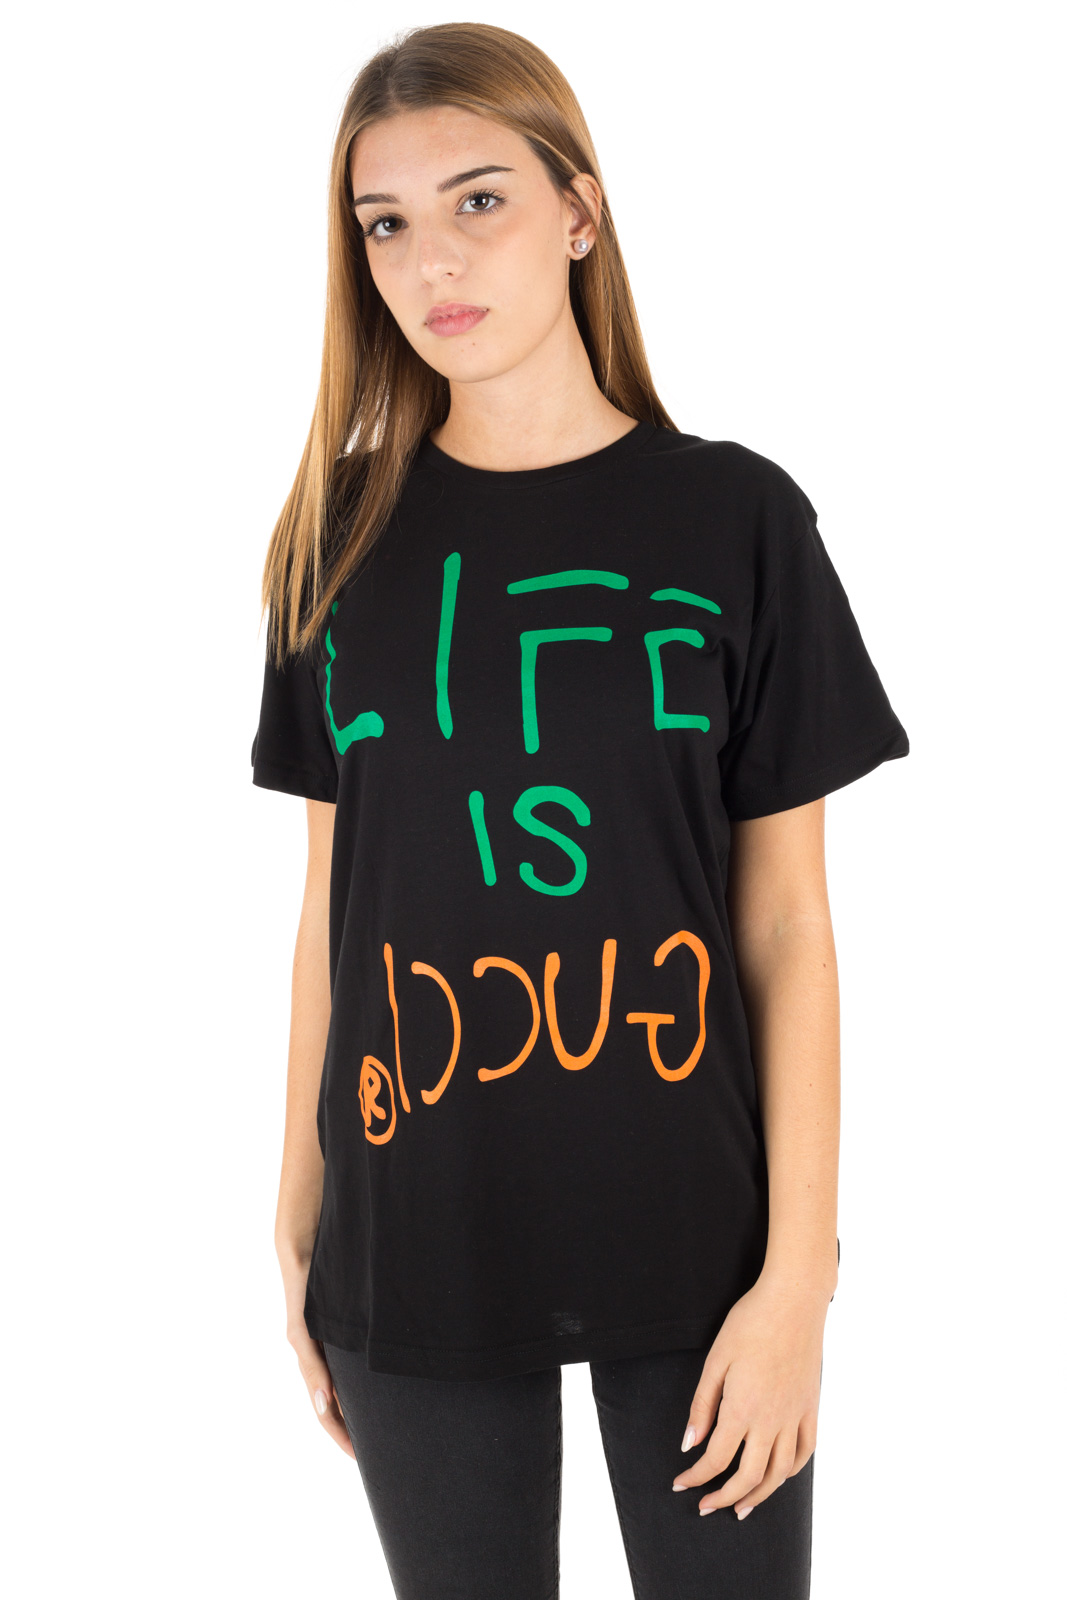 Faking - T shirt Life is Gucci Unisex